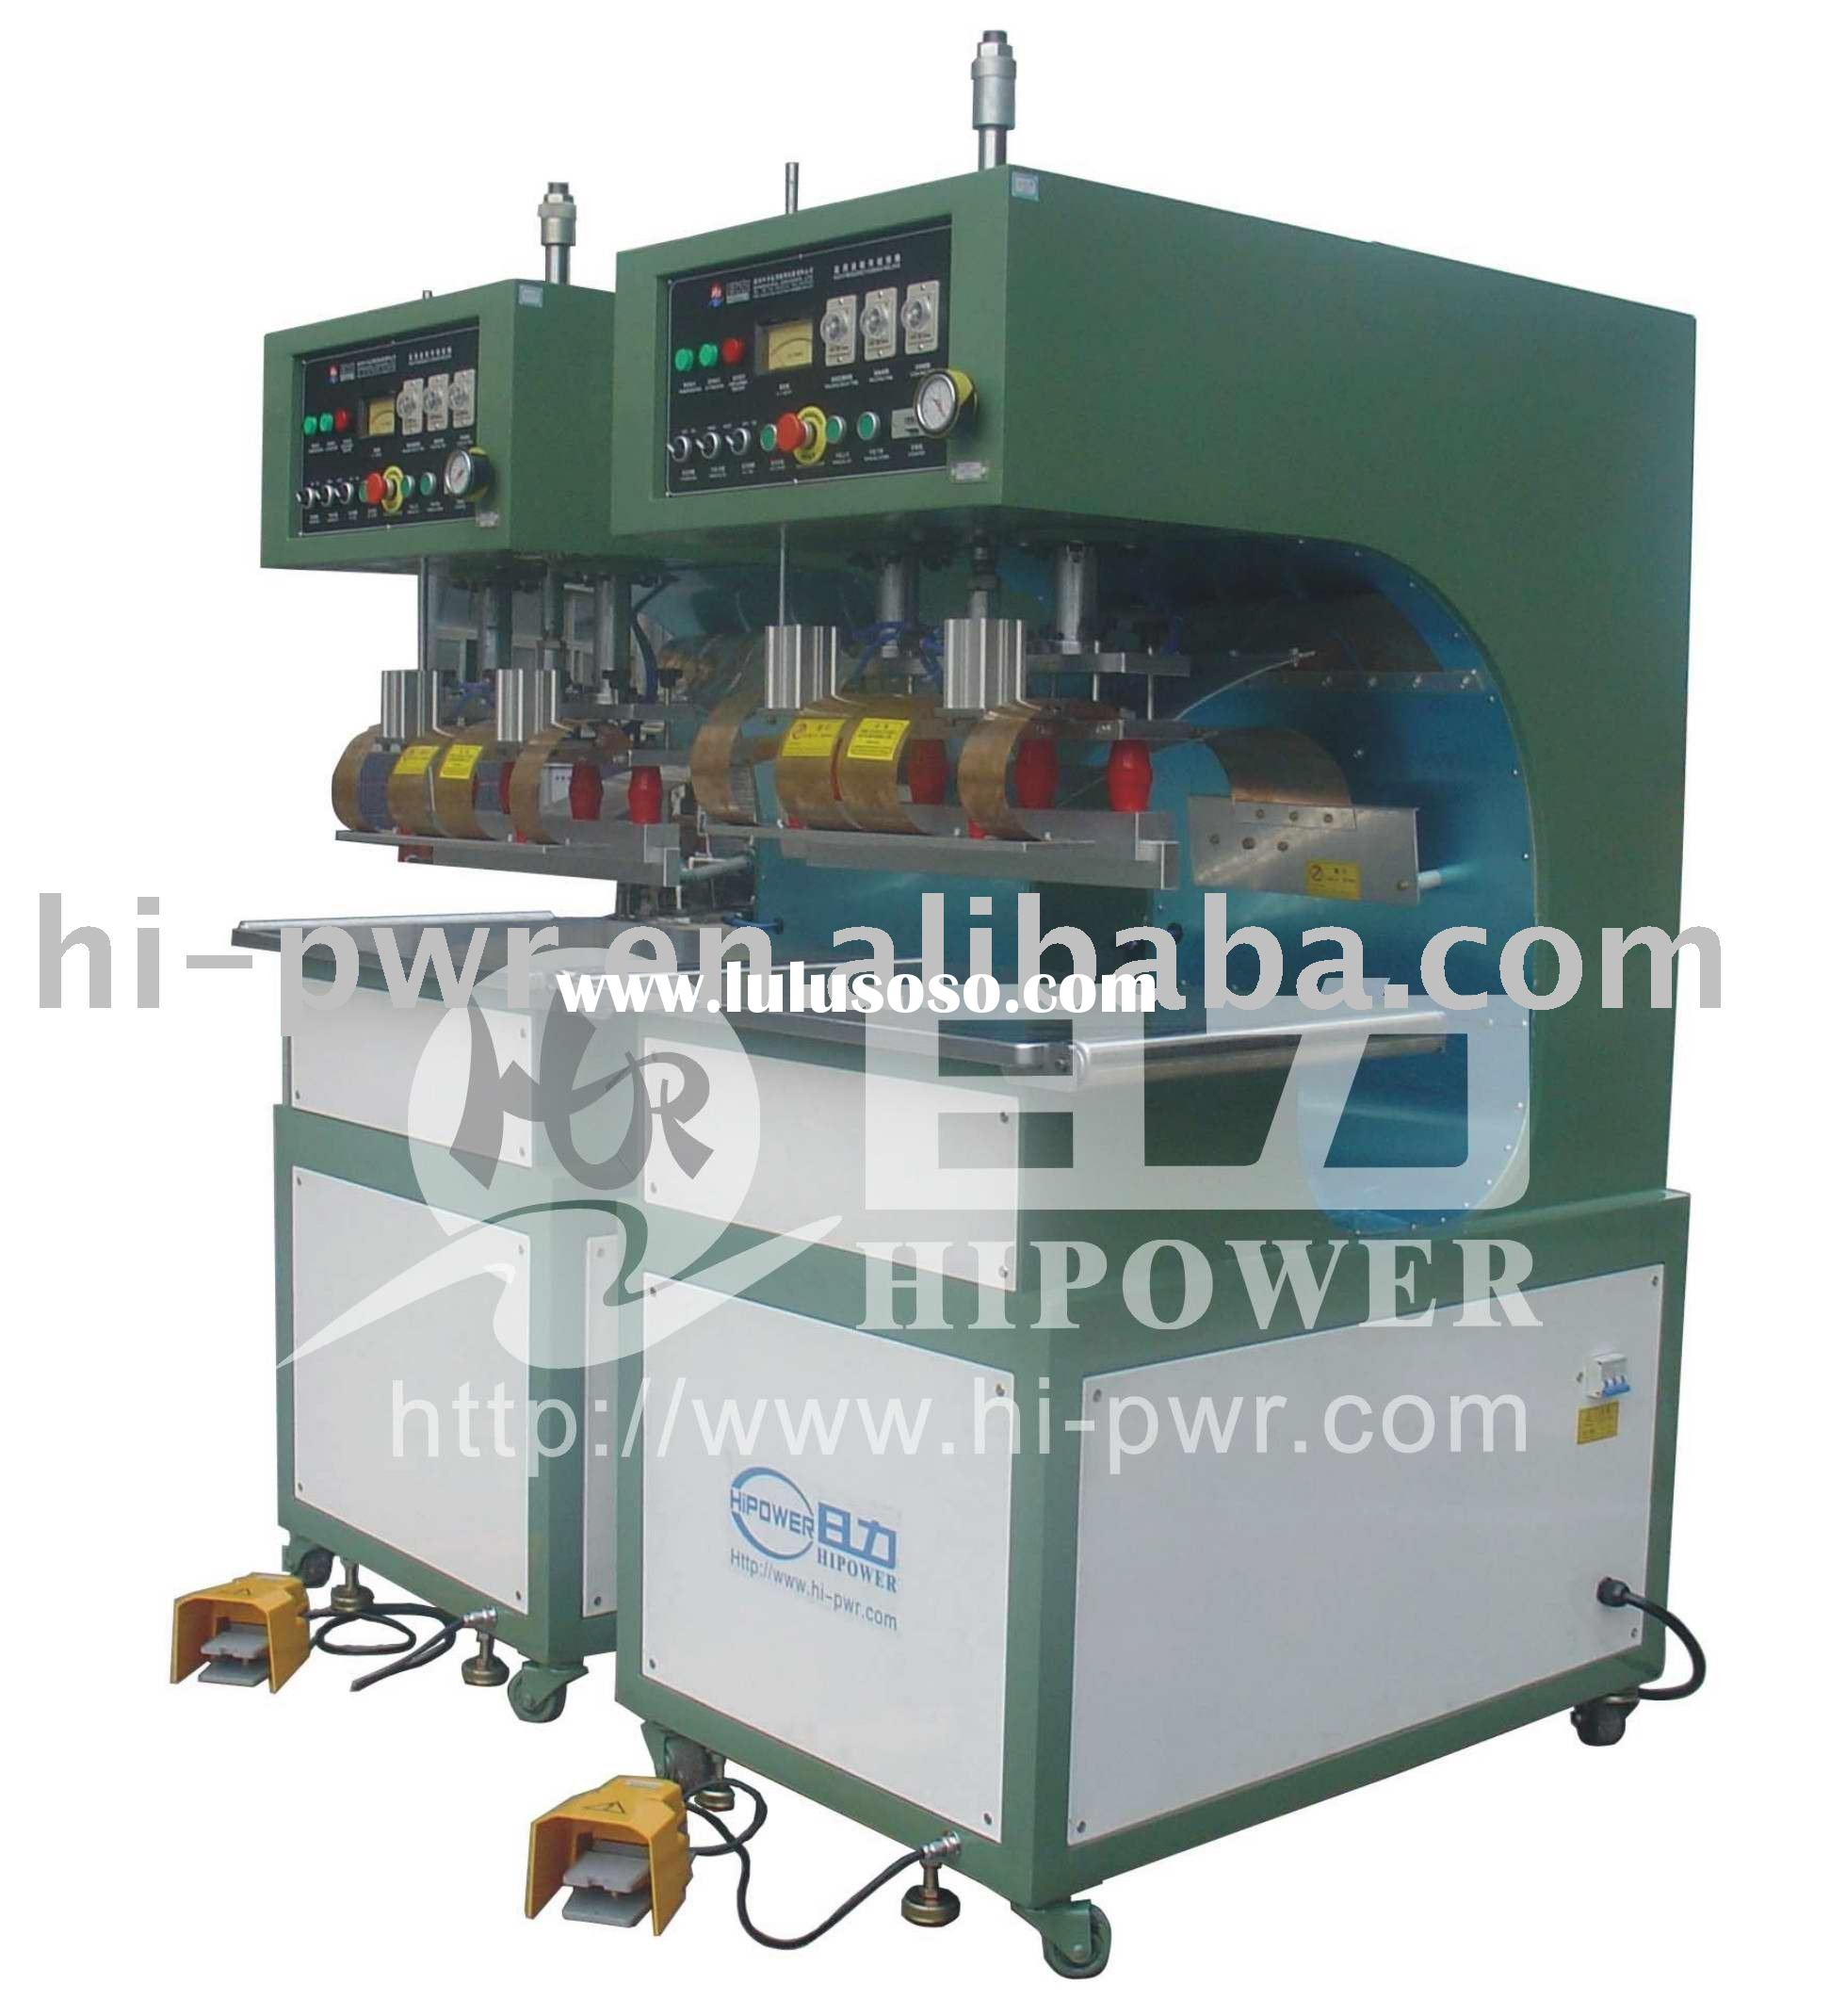 High Frequency Welding Machine for Canvas or Truck Tent